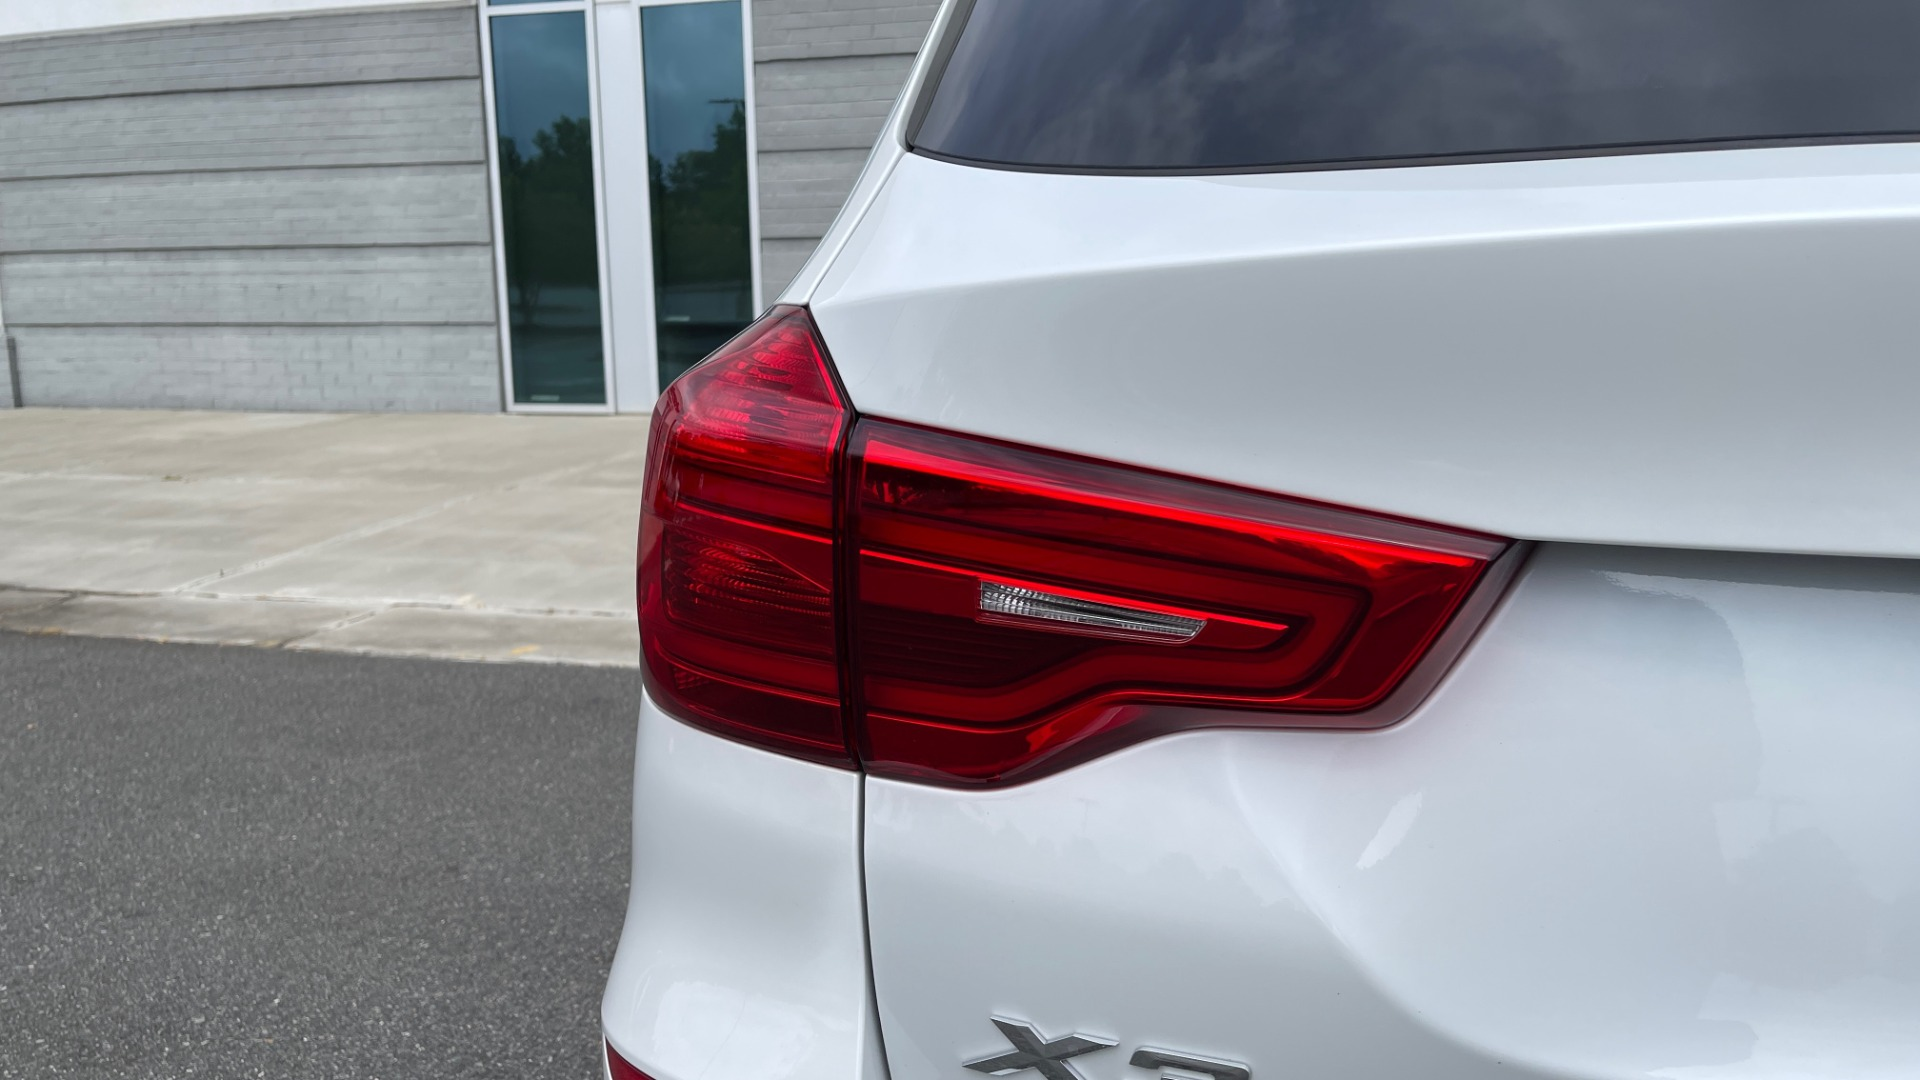 Used 2018 BMW X3 XDRIVE30I / NAV / PANO-ROOF / HTD STS / PARK DIST CNTRL / REARVIEW for sale $38,995 at Formula Imports in Charlotte NC 28227 23